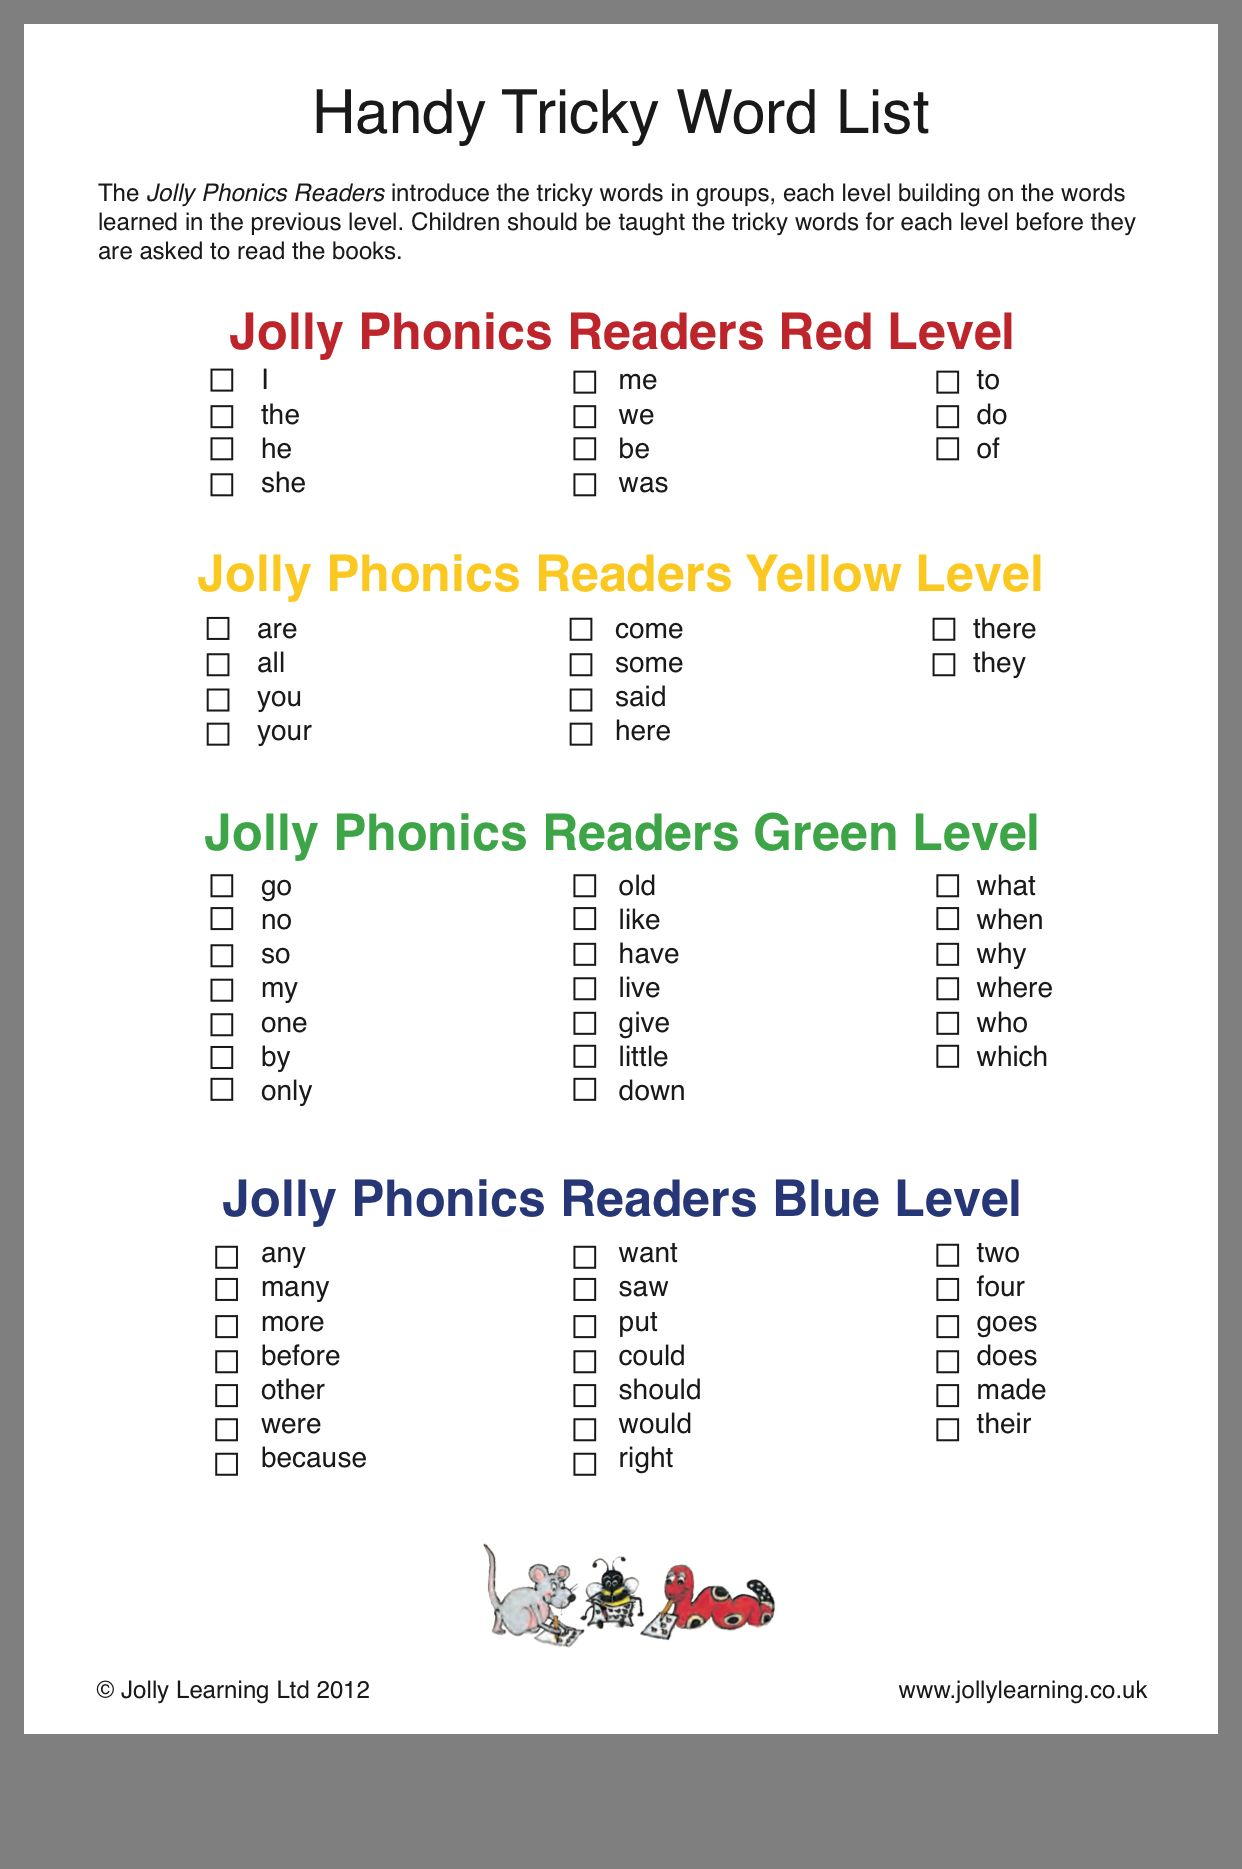 Pin By Rachel F On Special Ed Resource Ideas With Images